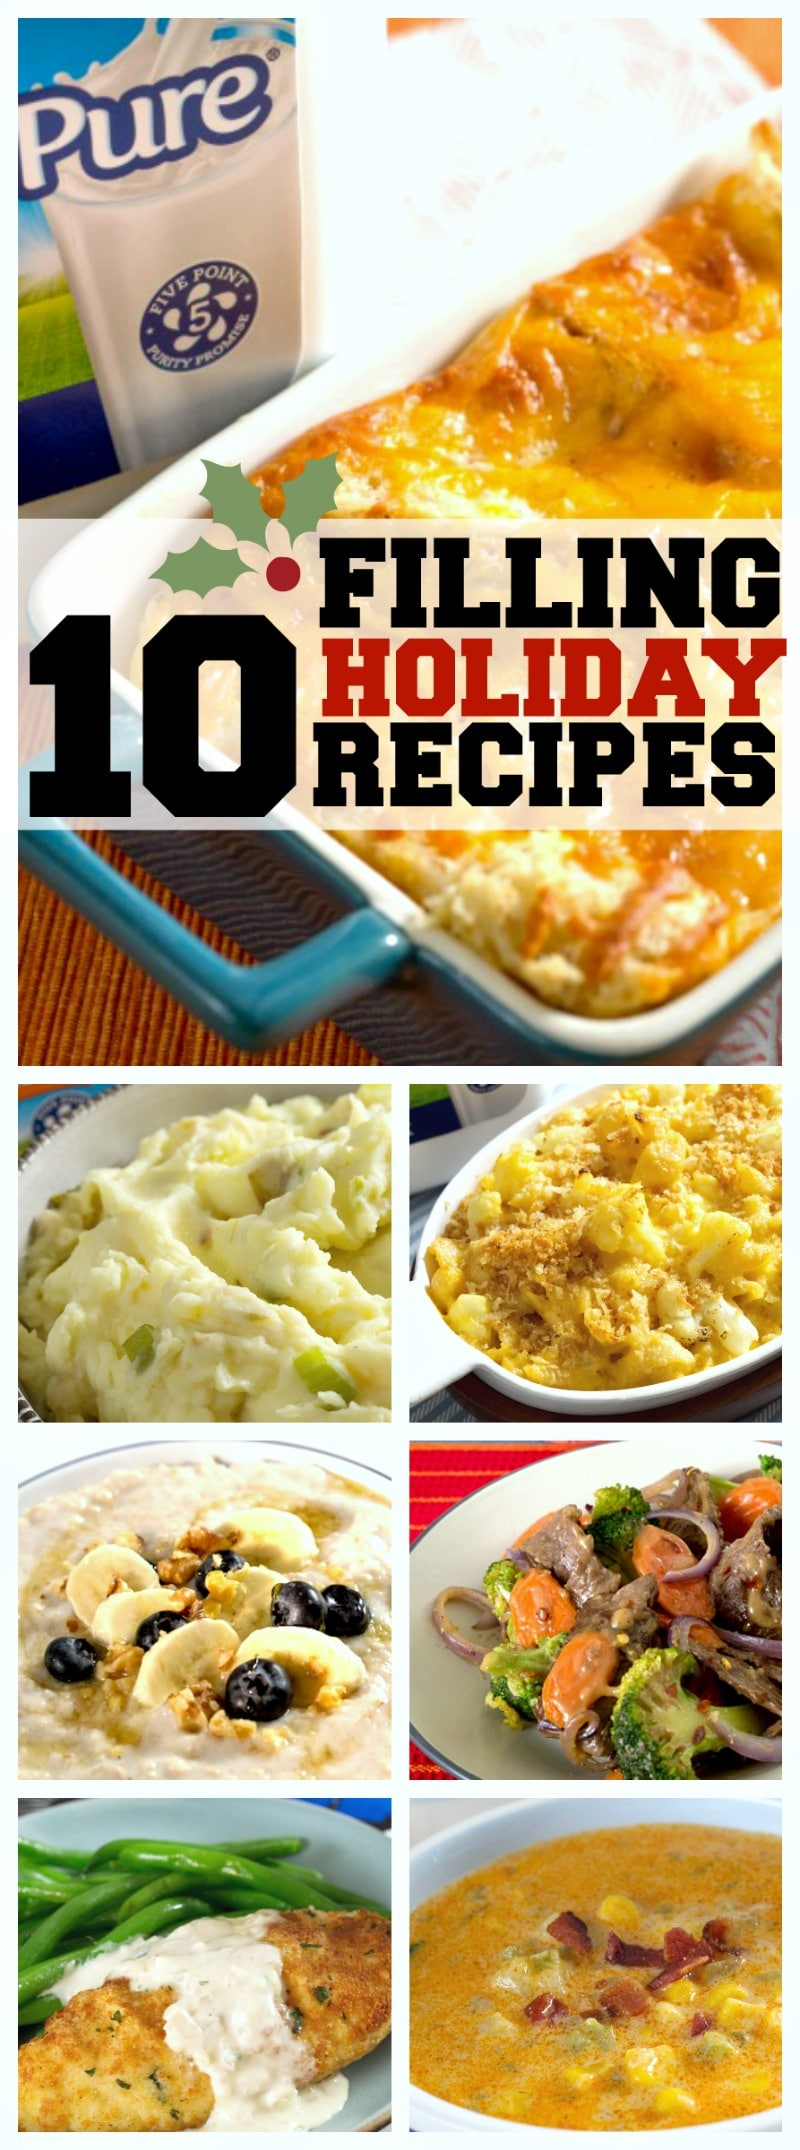 10 Filling Holiday Recipes